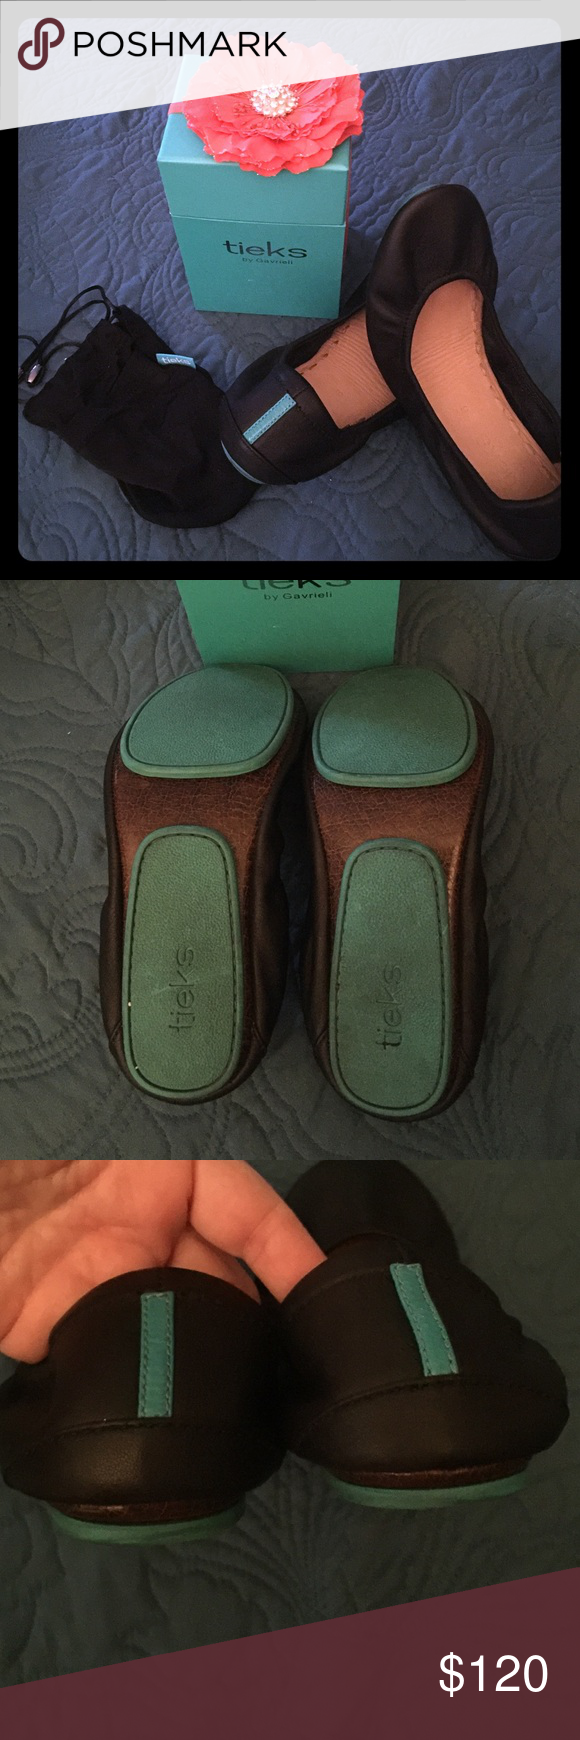 Tieks ballet flats Tieks ballet flats, black size 6. Worn only 5 times!! Perfect condition other than the bottoms which are shown in pic. Original box, dust covers and bag all included. No scuffs and no wear marks on inside leather. Please no low ball offers. Price is pretty firm! Tieks Shoes Flats & Loafers